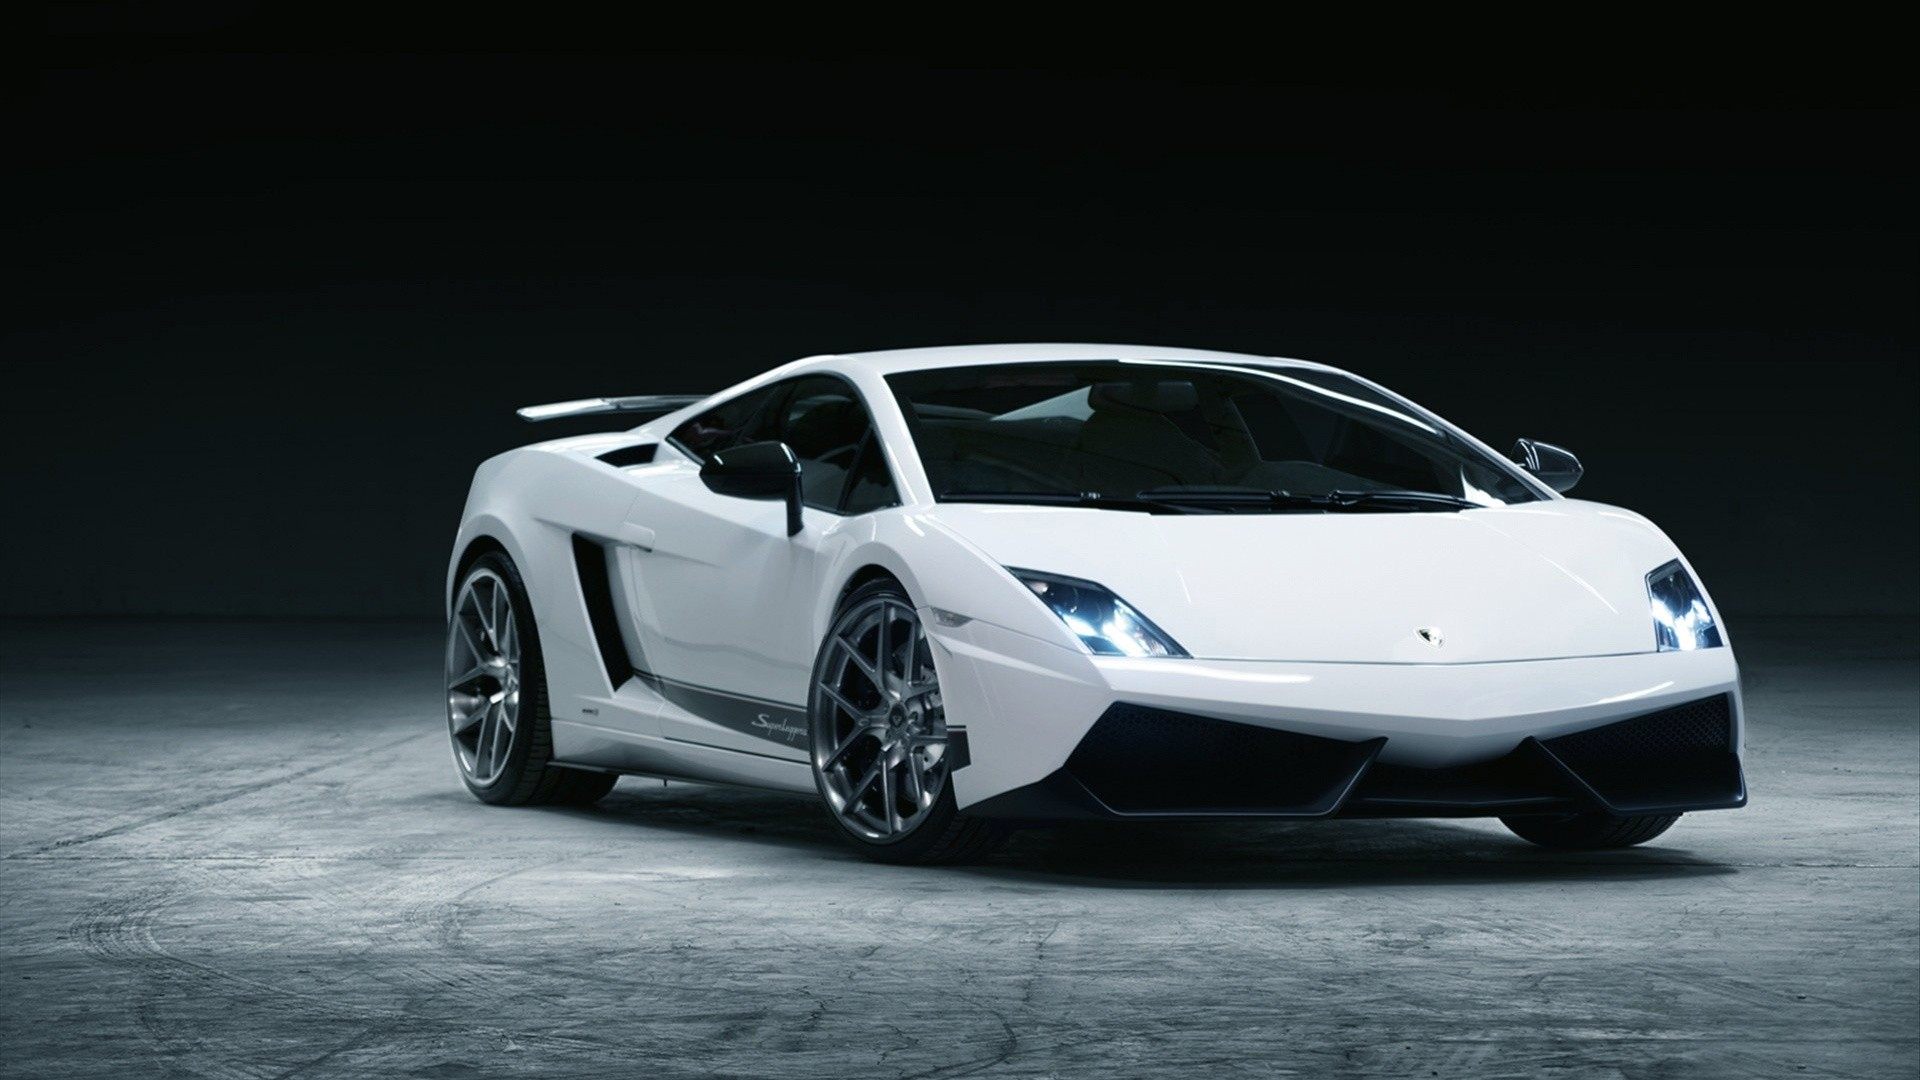 New Lamborghini Gallardo 2013-HD-Wallpapers